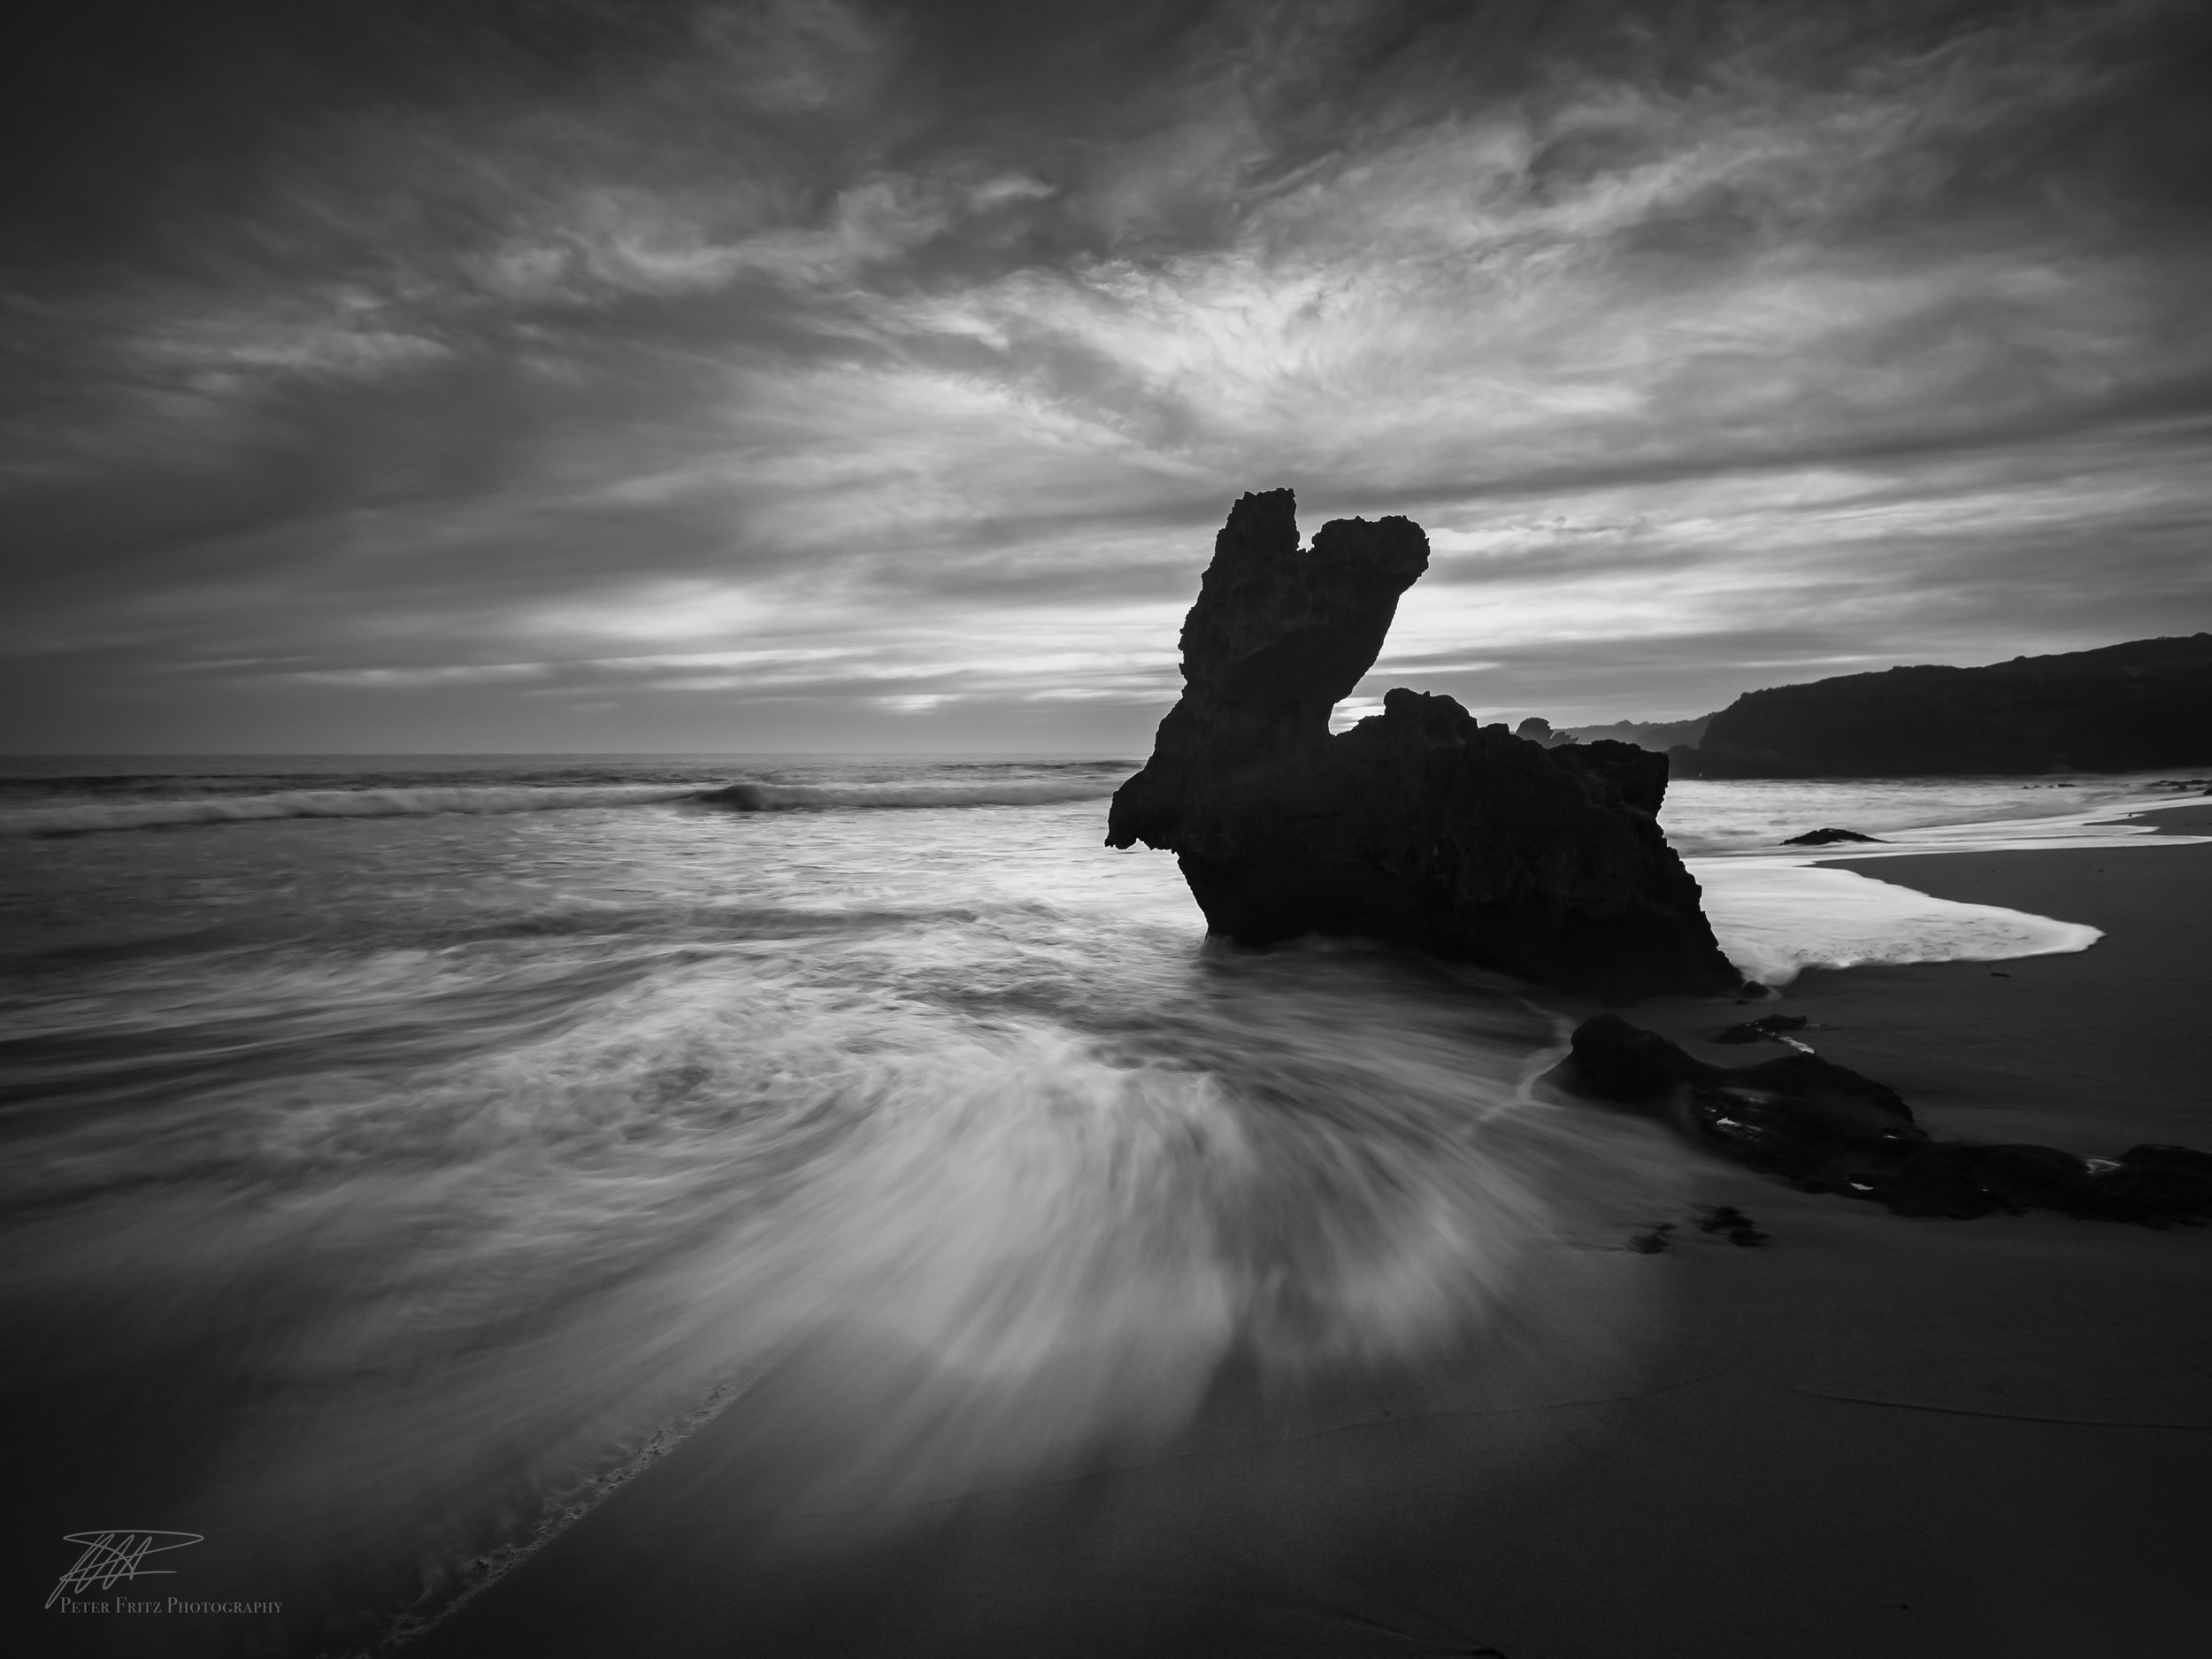 My black and white solution for poor sunsets which emphasises the rock and swirling water